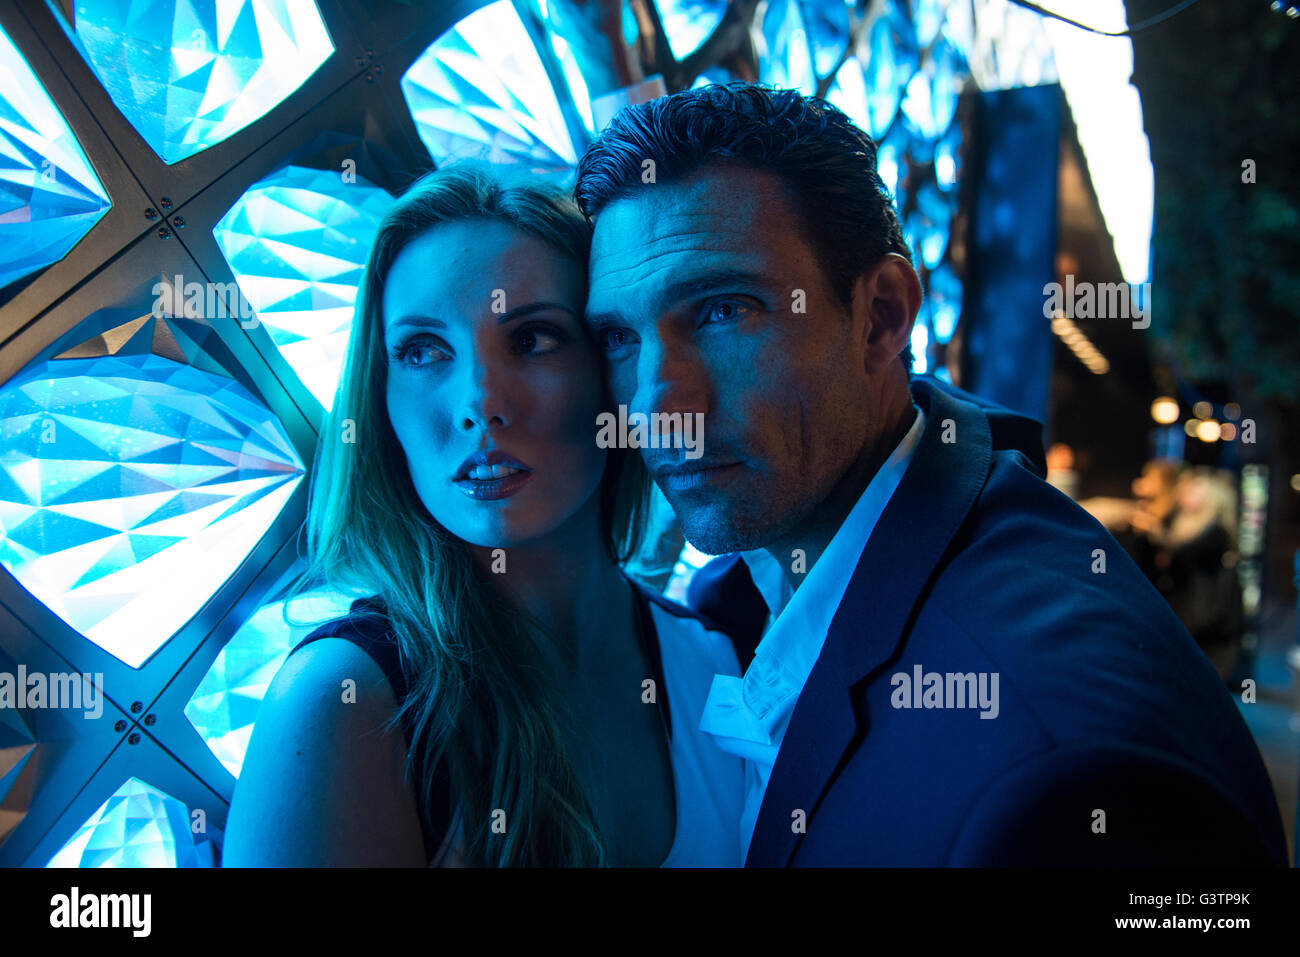 A smartly dressed couple bathed in blue light in front of a light fixture on the South Bank in London. - Stock Image